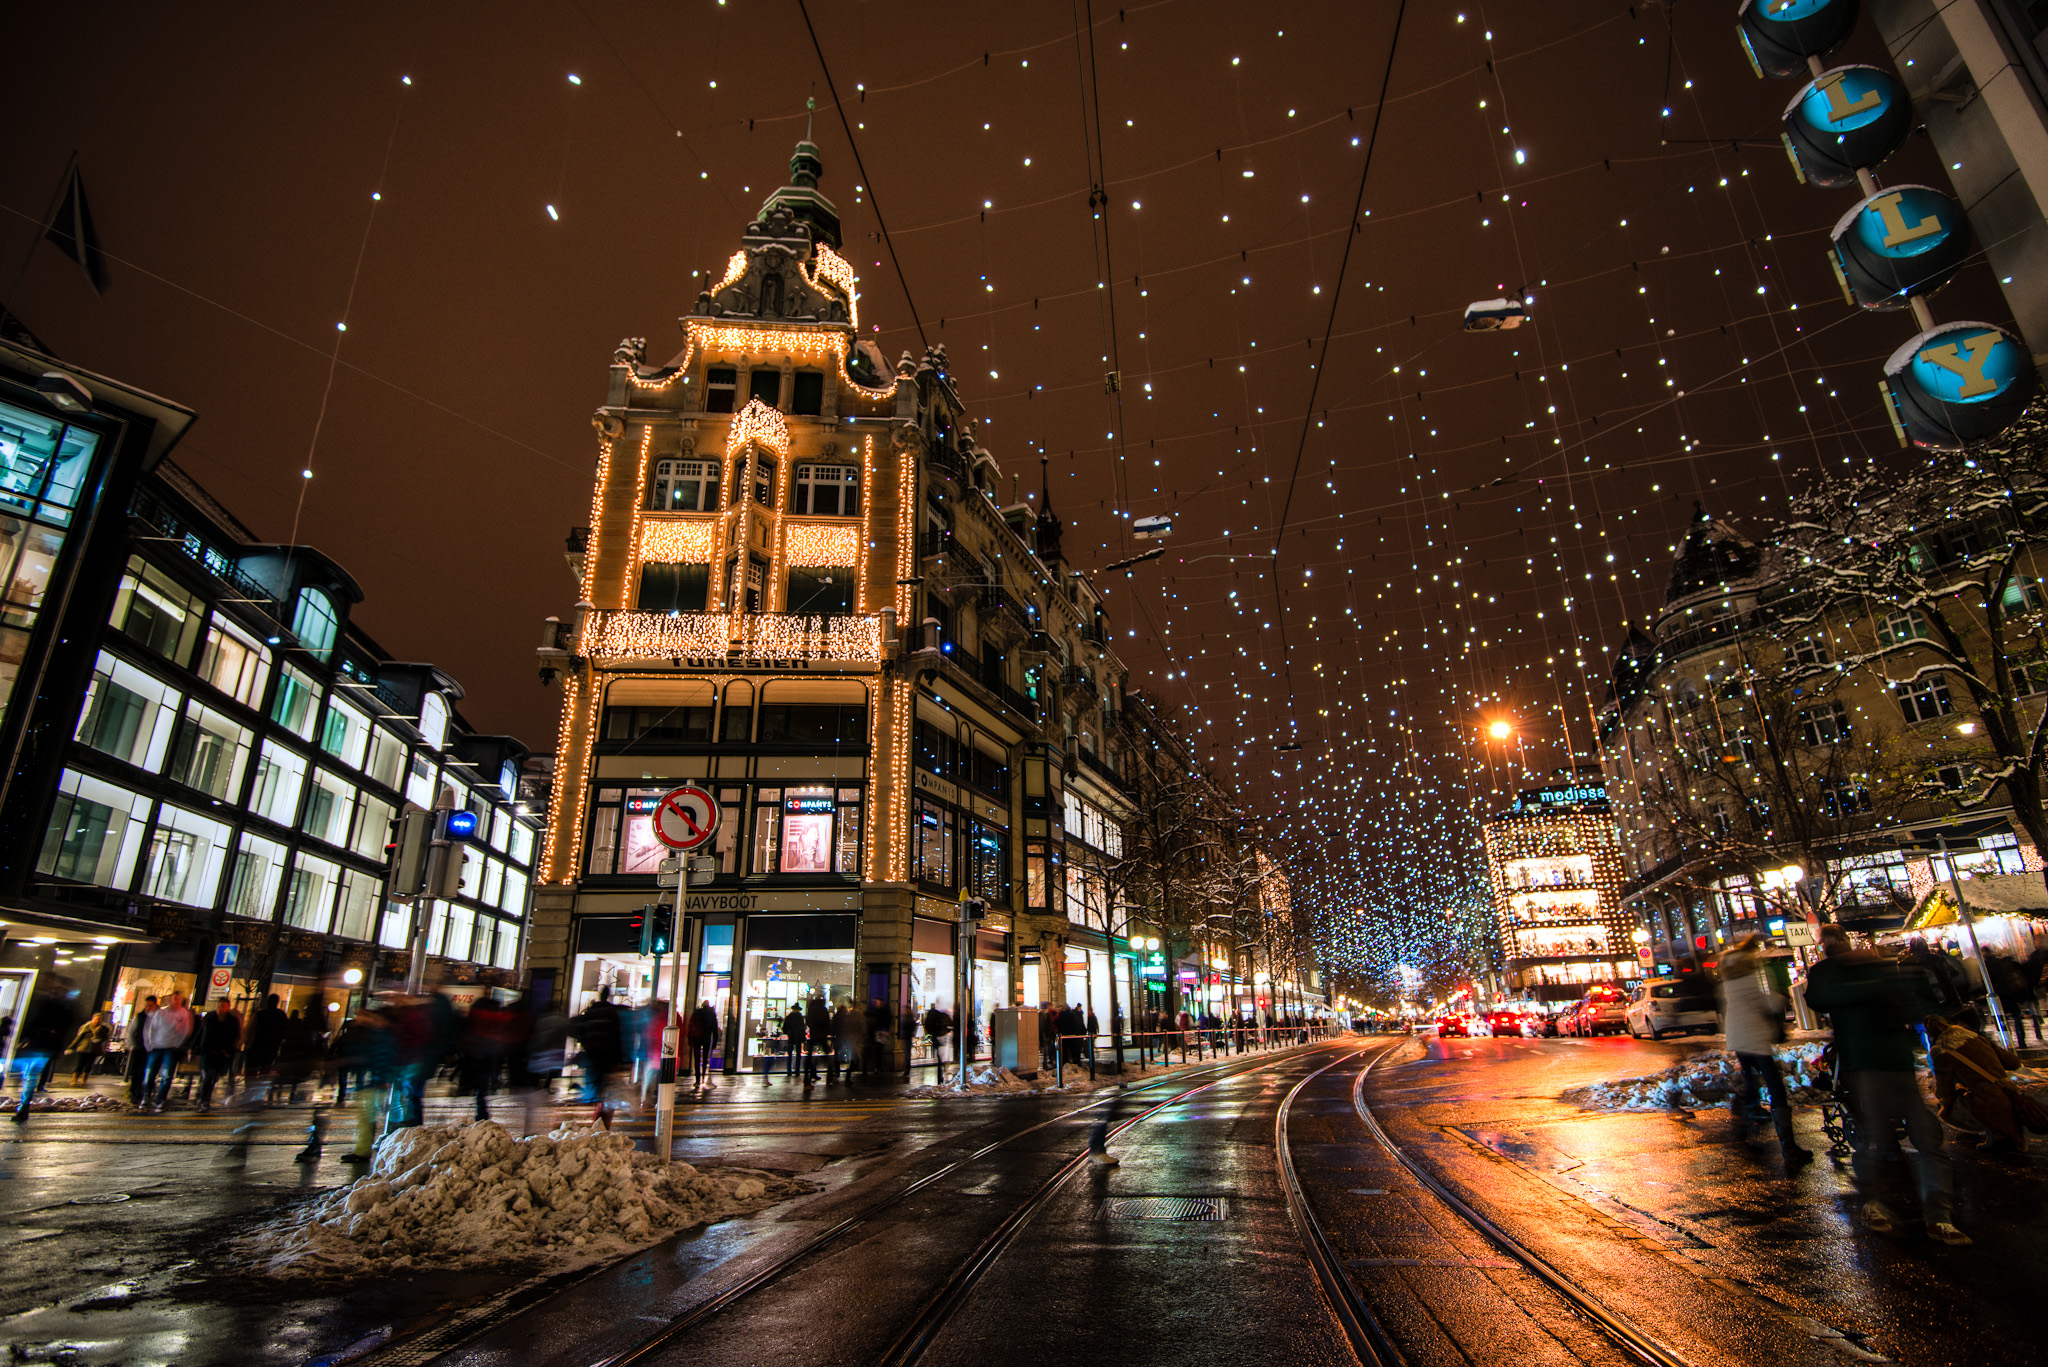 Bahnhofstrasse,Top things to do in Zurich for the perfect break!